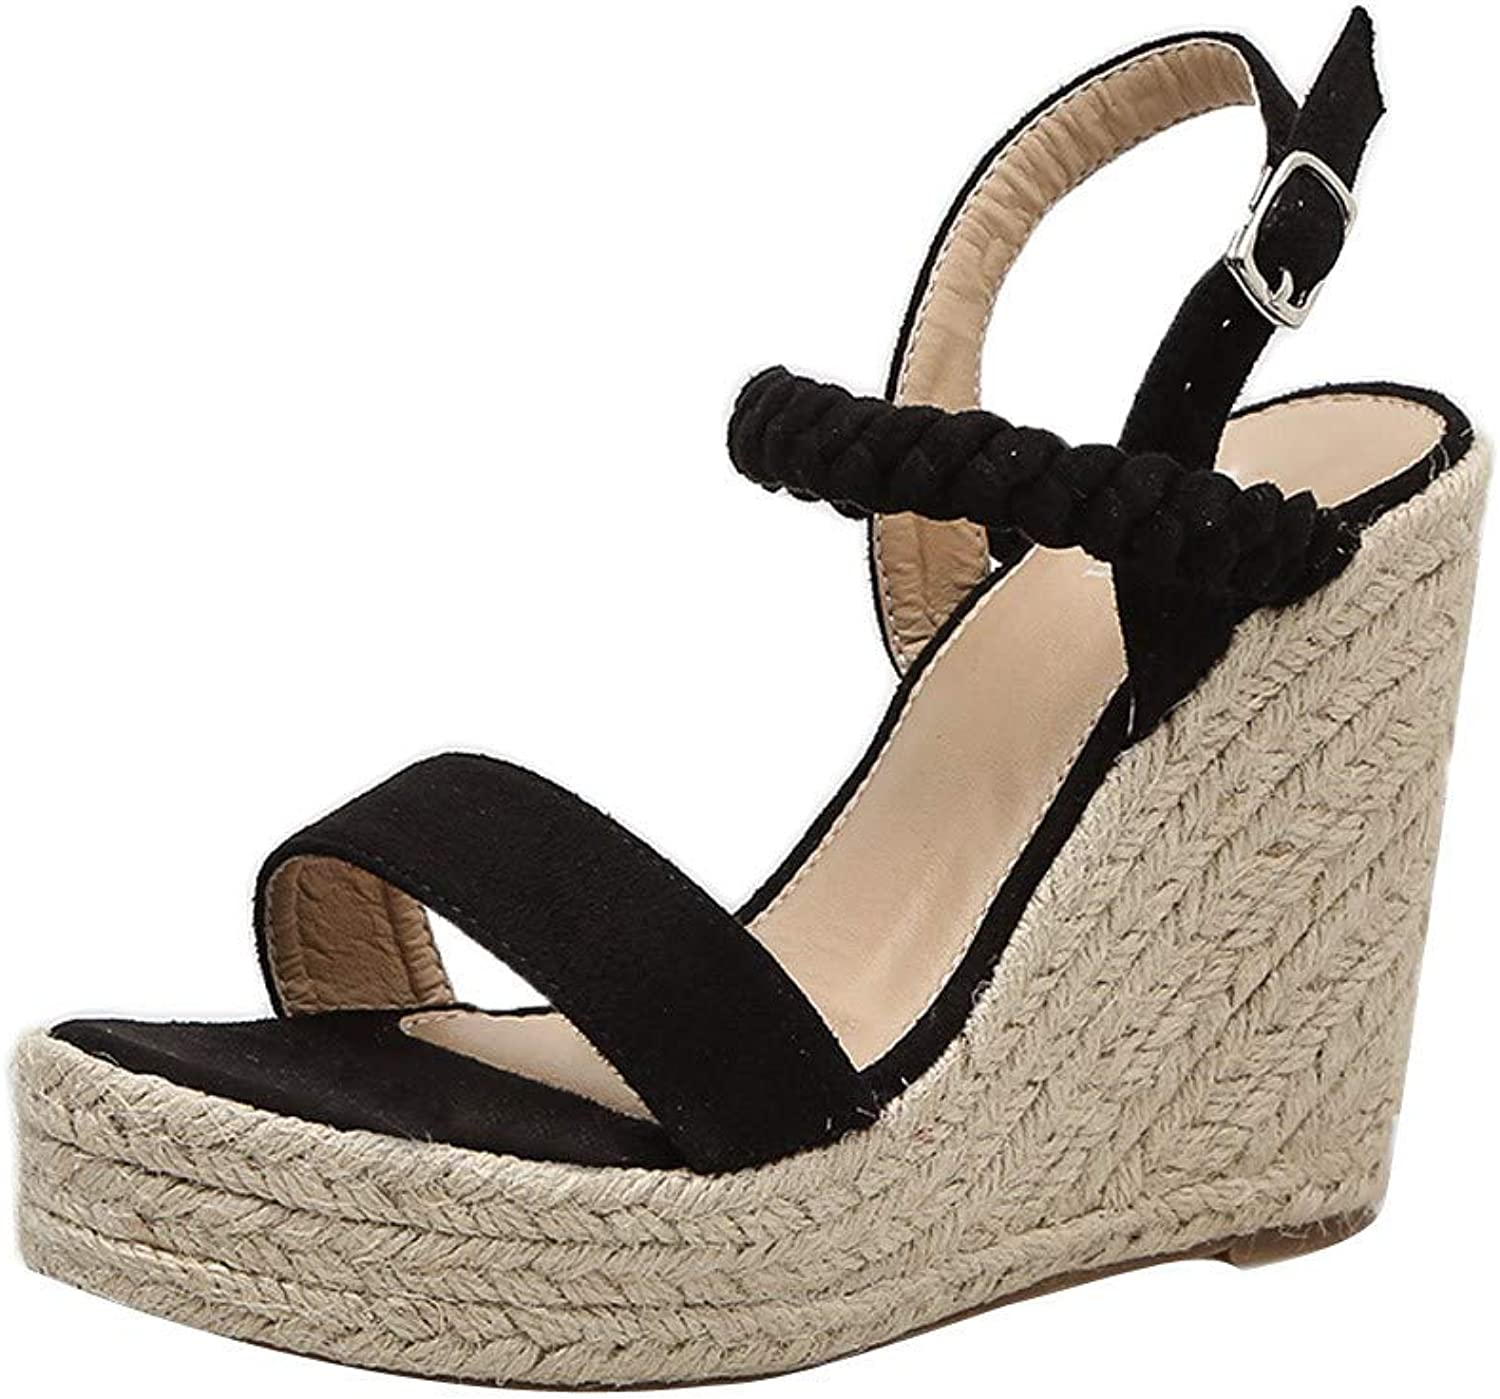 SUSENSTONE Woman shoes Wedge Pumps Platform High Heels Woven Hemp Loop Sandals